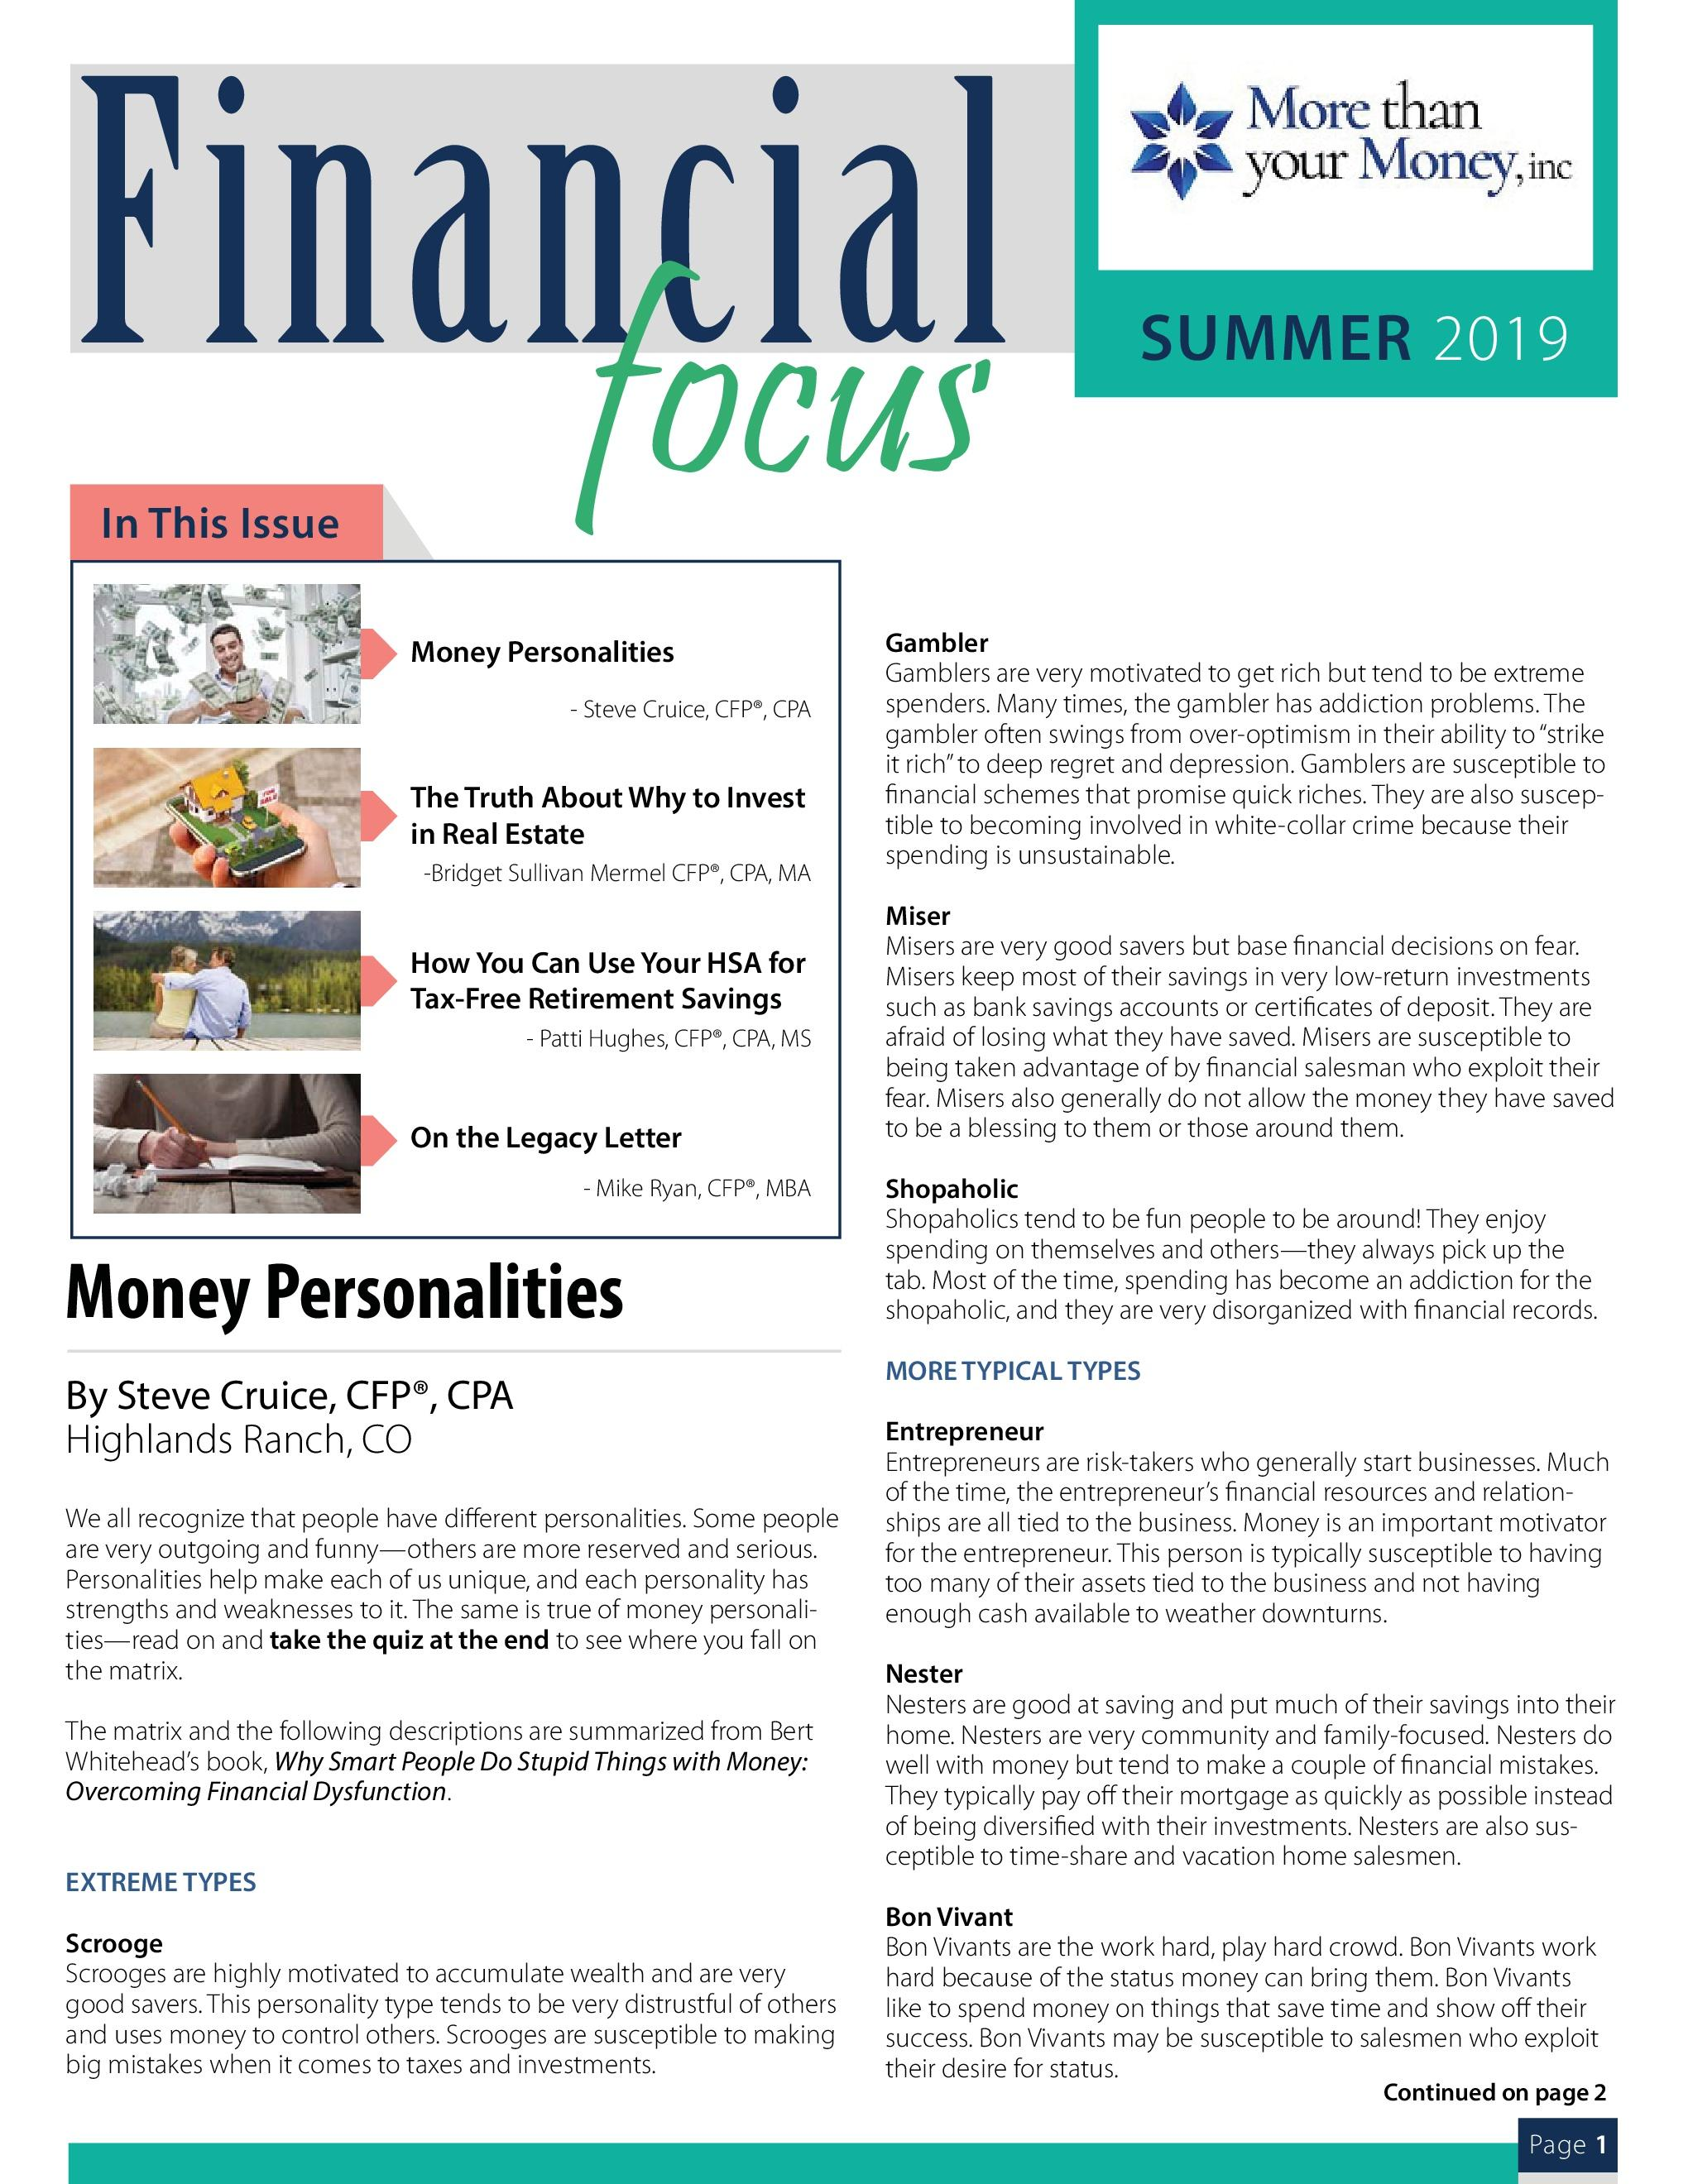 Financial Focus Summer 2019 Thumbnail